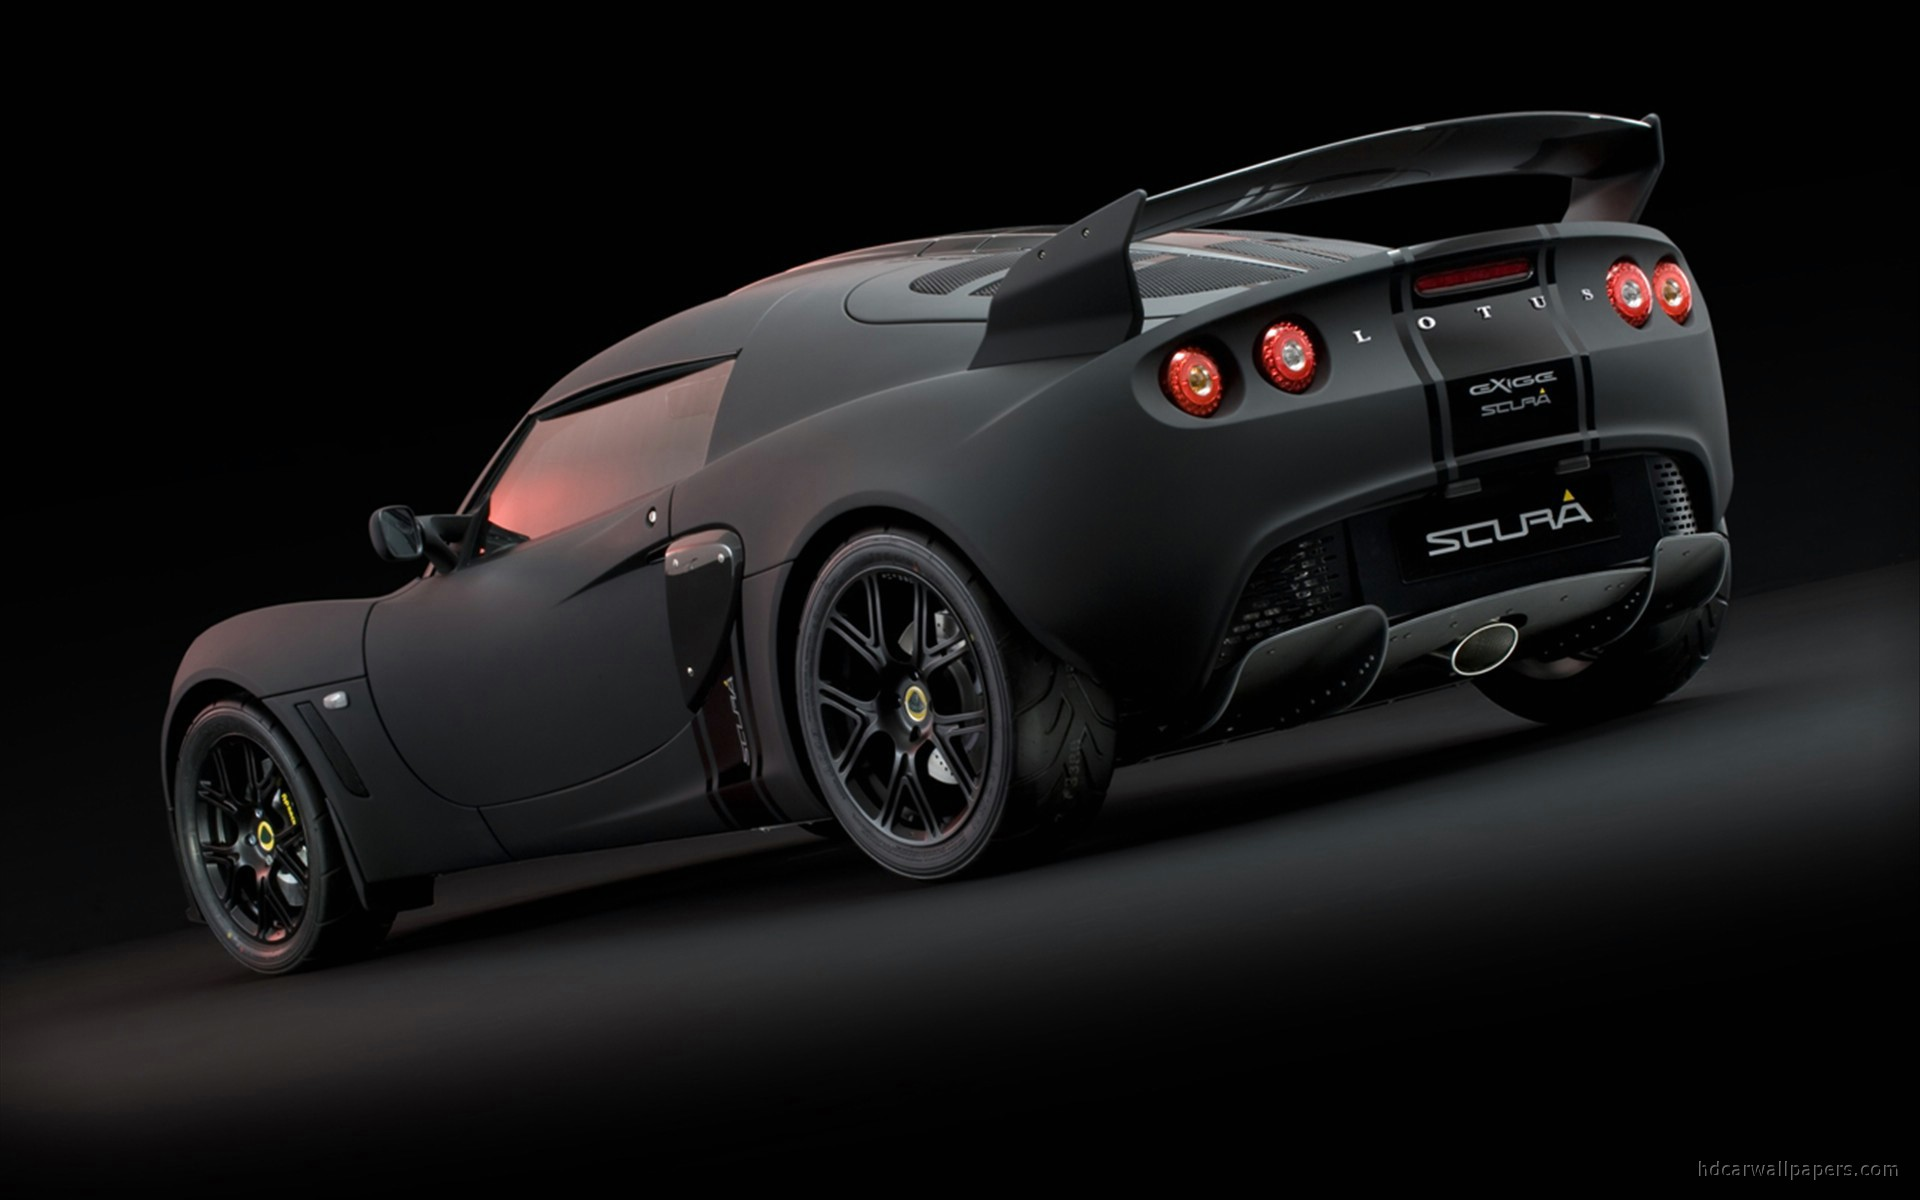 Lotus Exige Scura Wallpaper HD Car Wallpapers ID